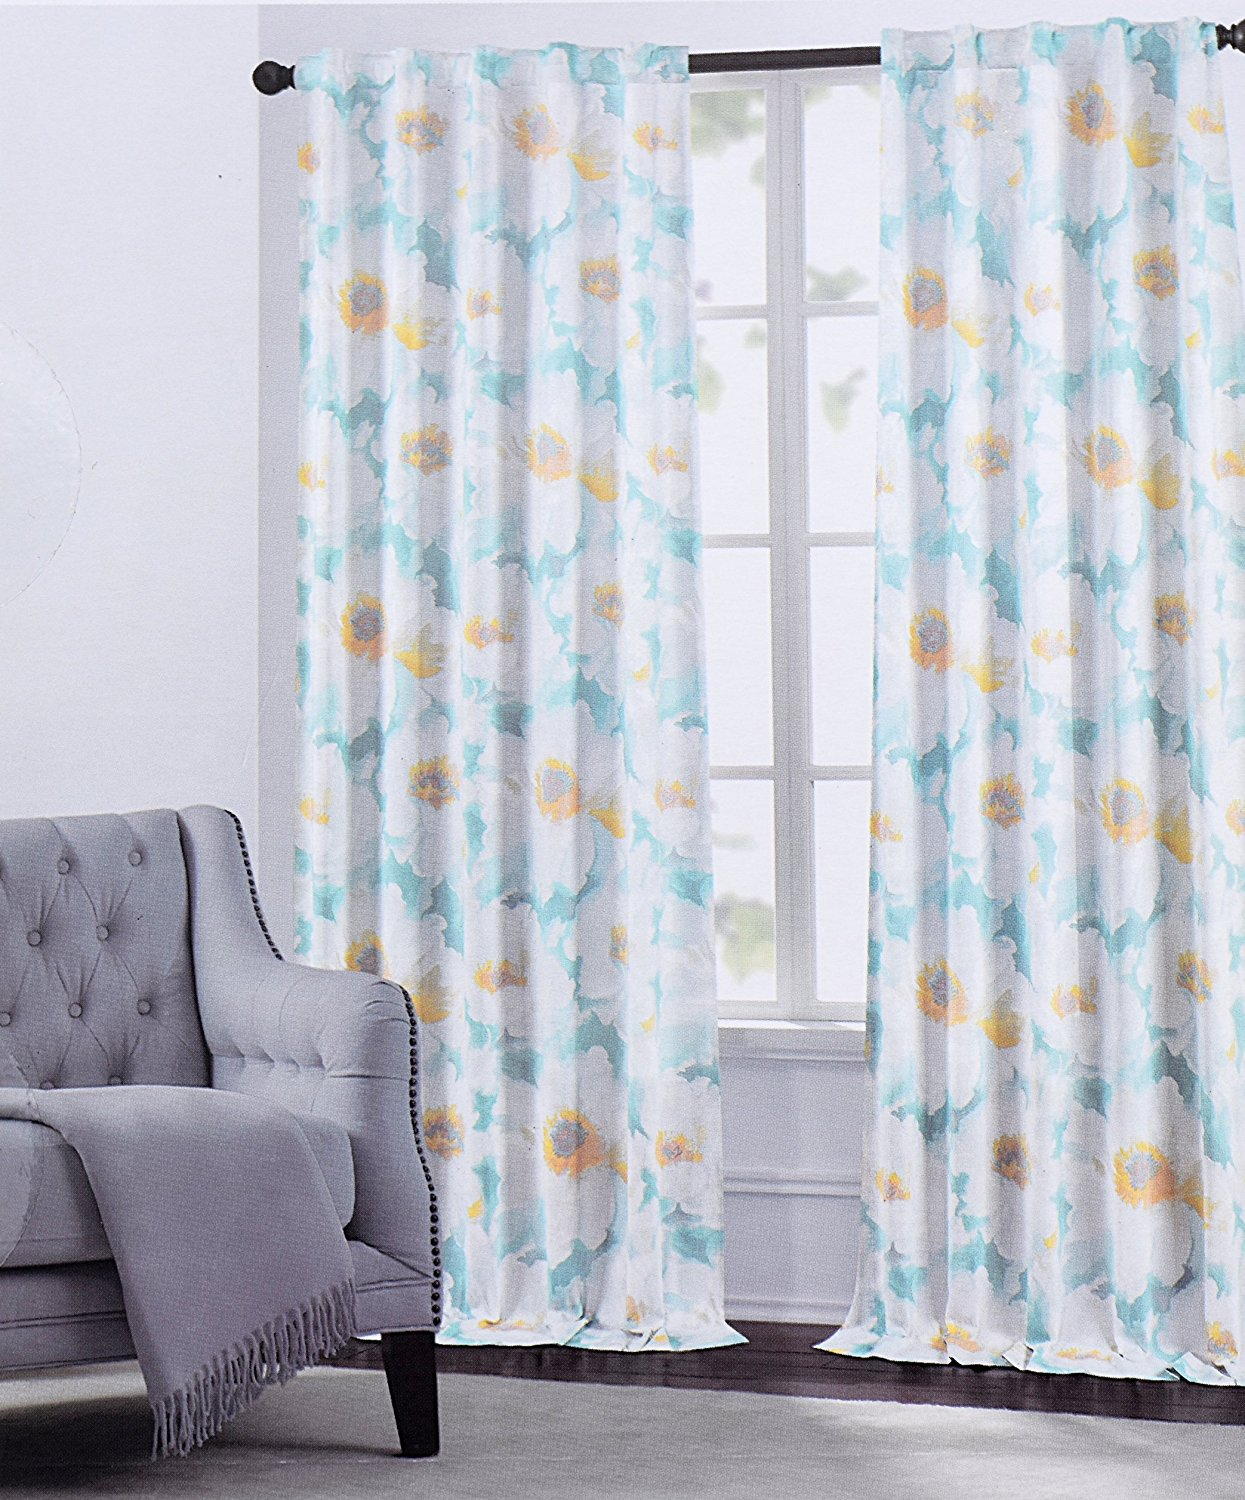 Get Quotations · Hillcrest Window Curtains Arlene Large Flowers Floral  Print Grey Or Turquoise Road Pocket Curtains 100%